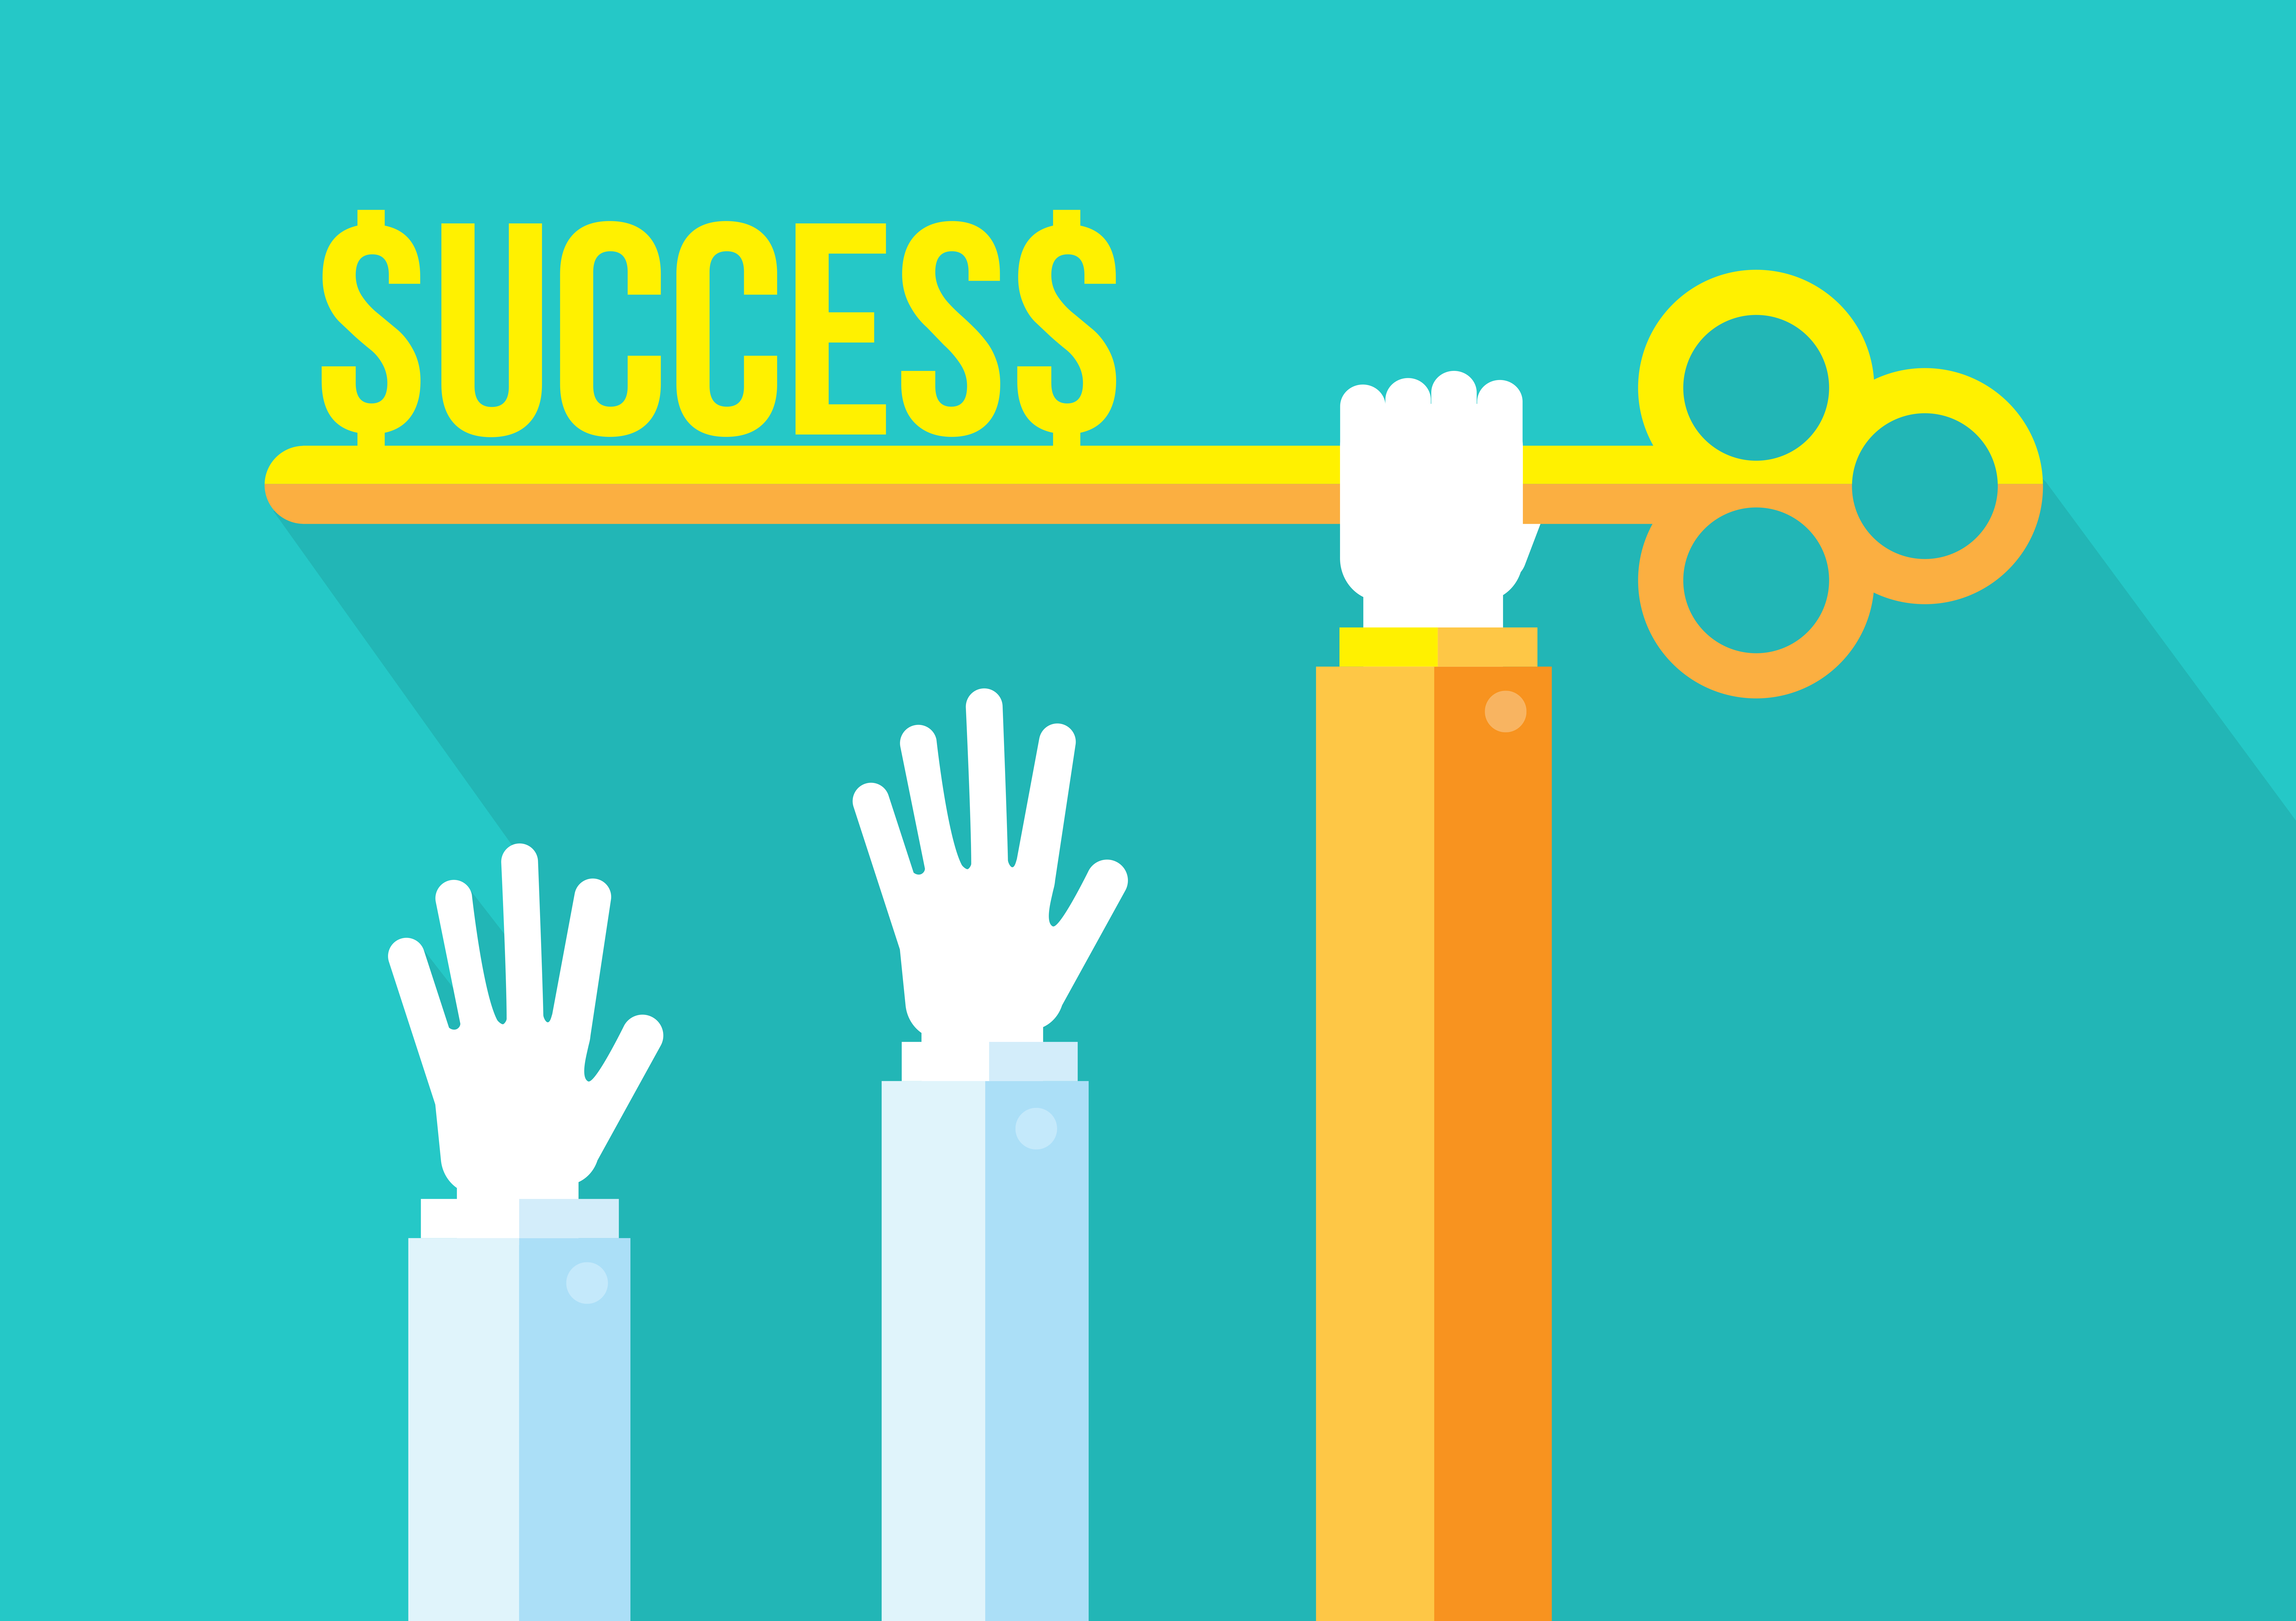 Business Competition Leadership And Key To Success